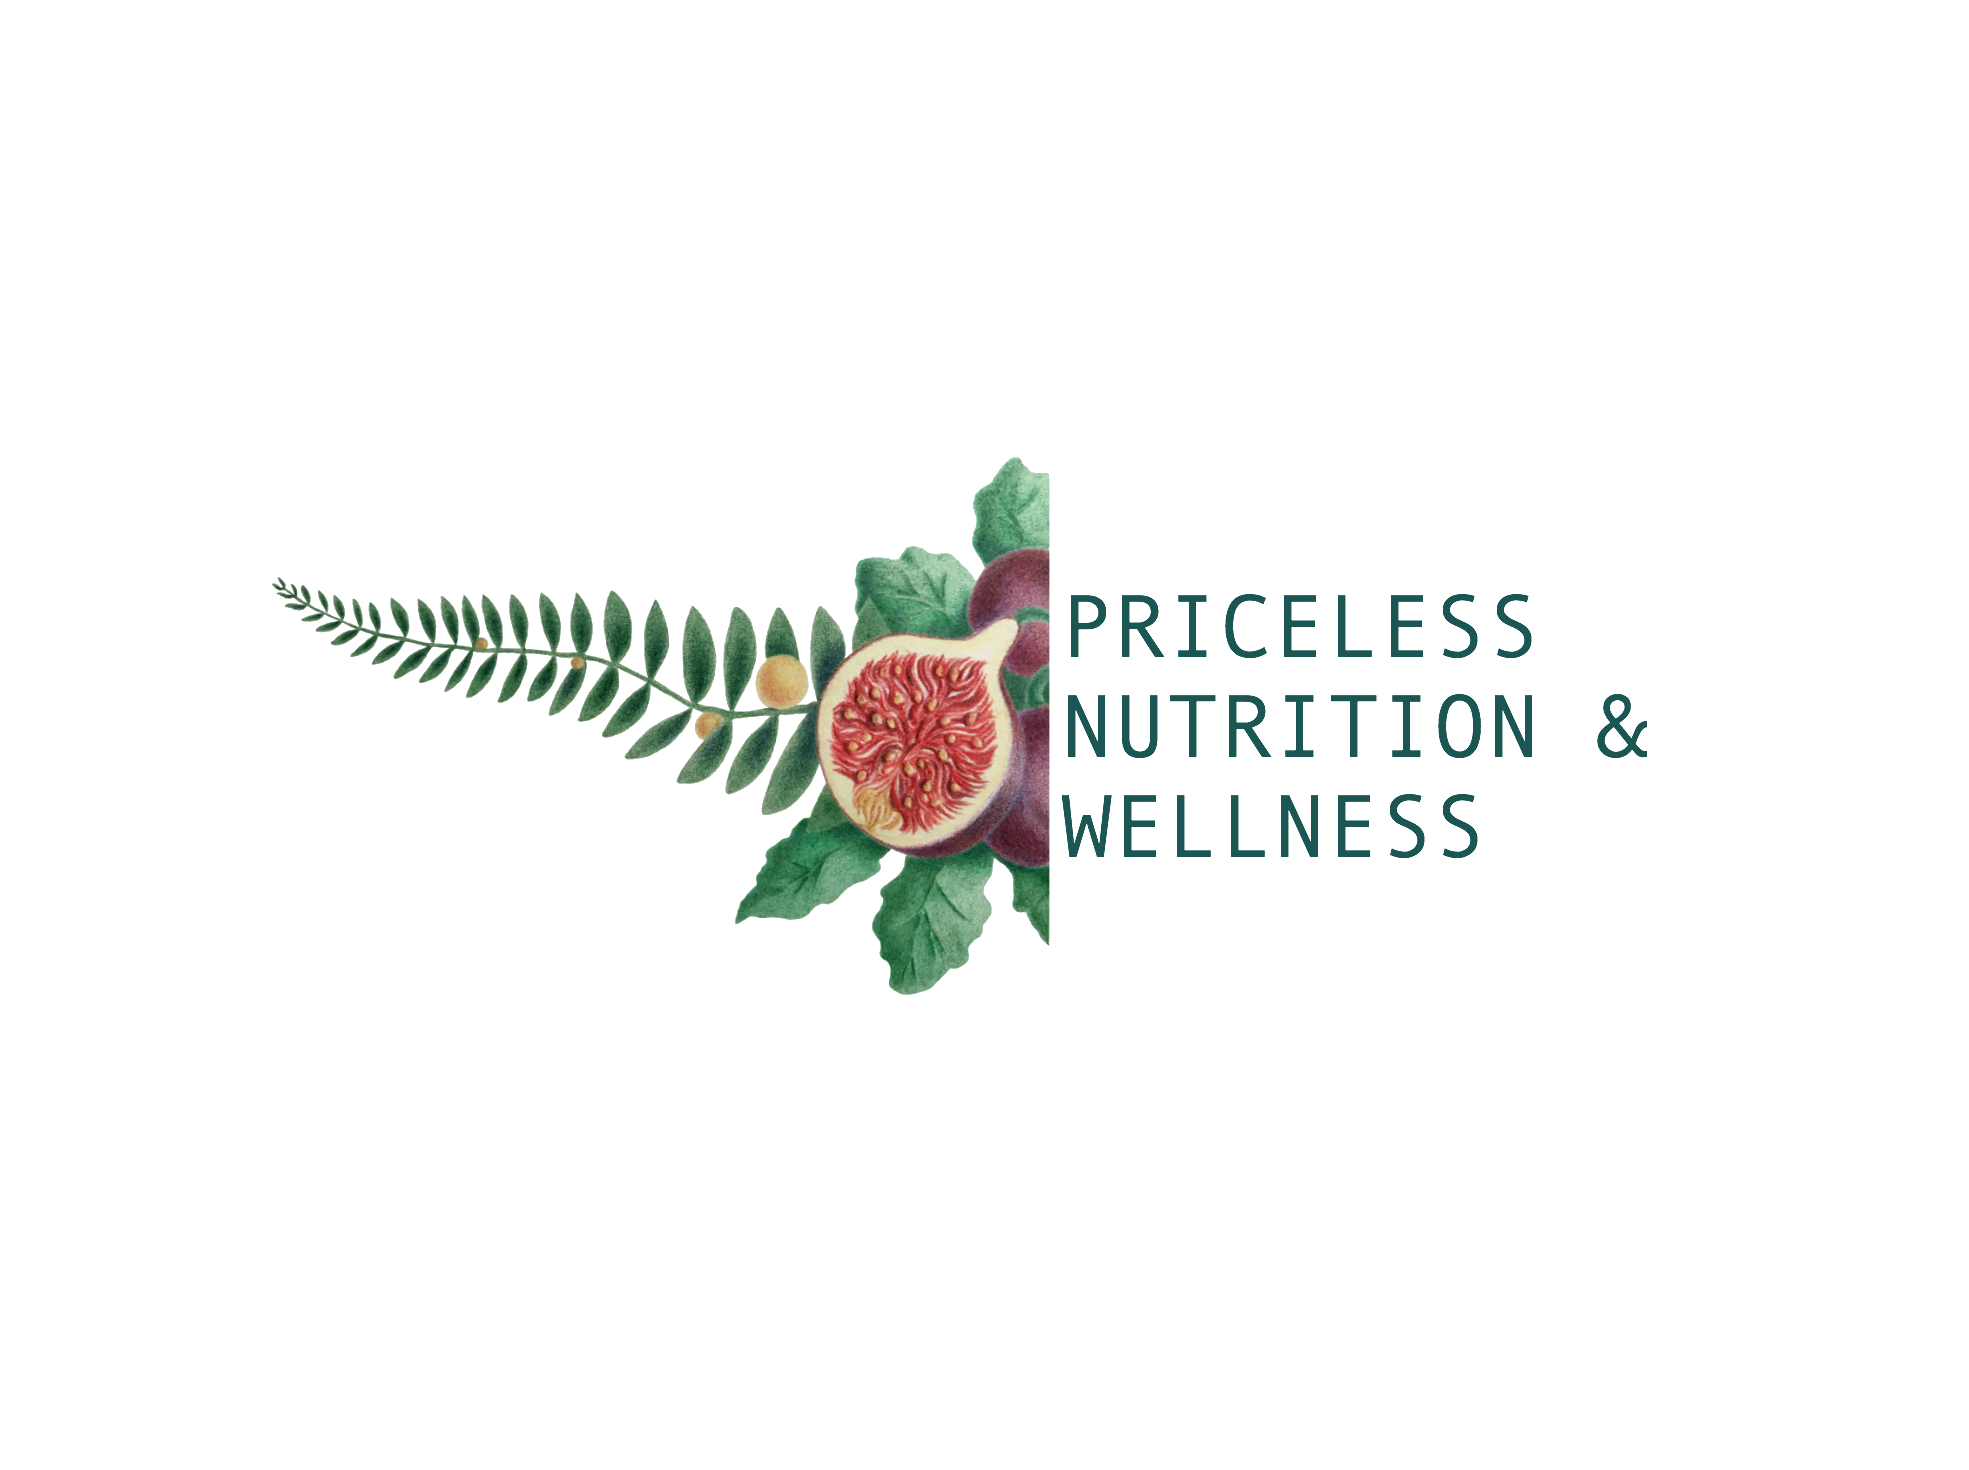 PricelessNutrition&Wellness.png